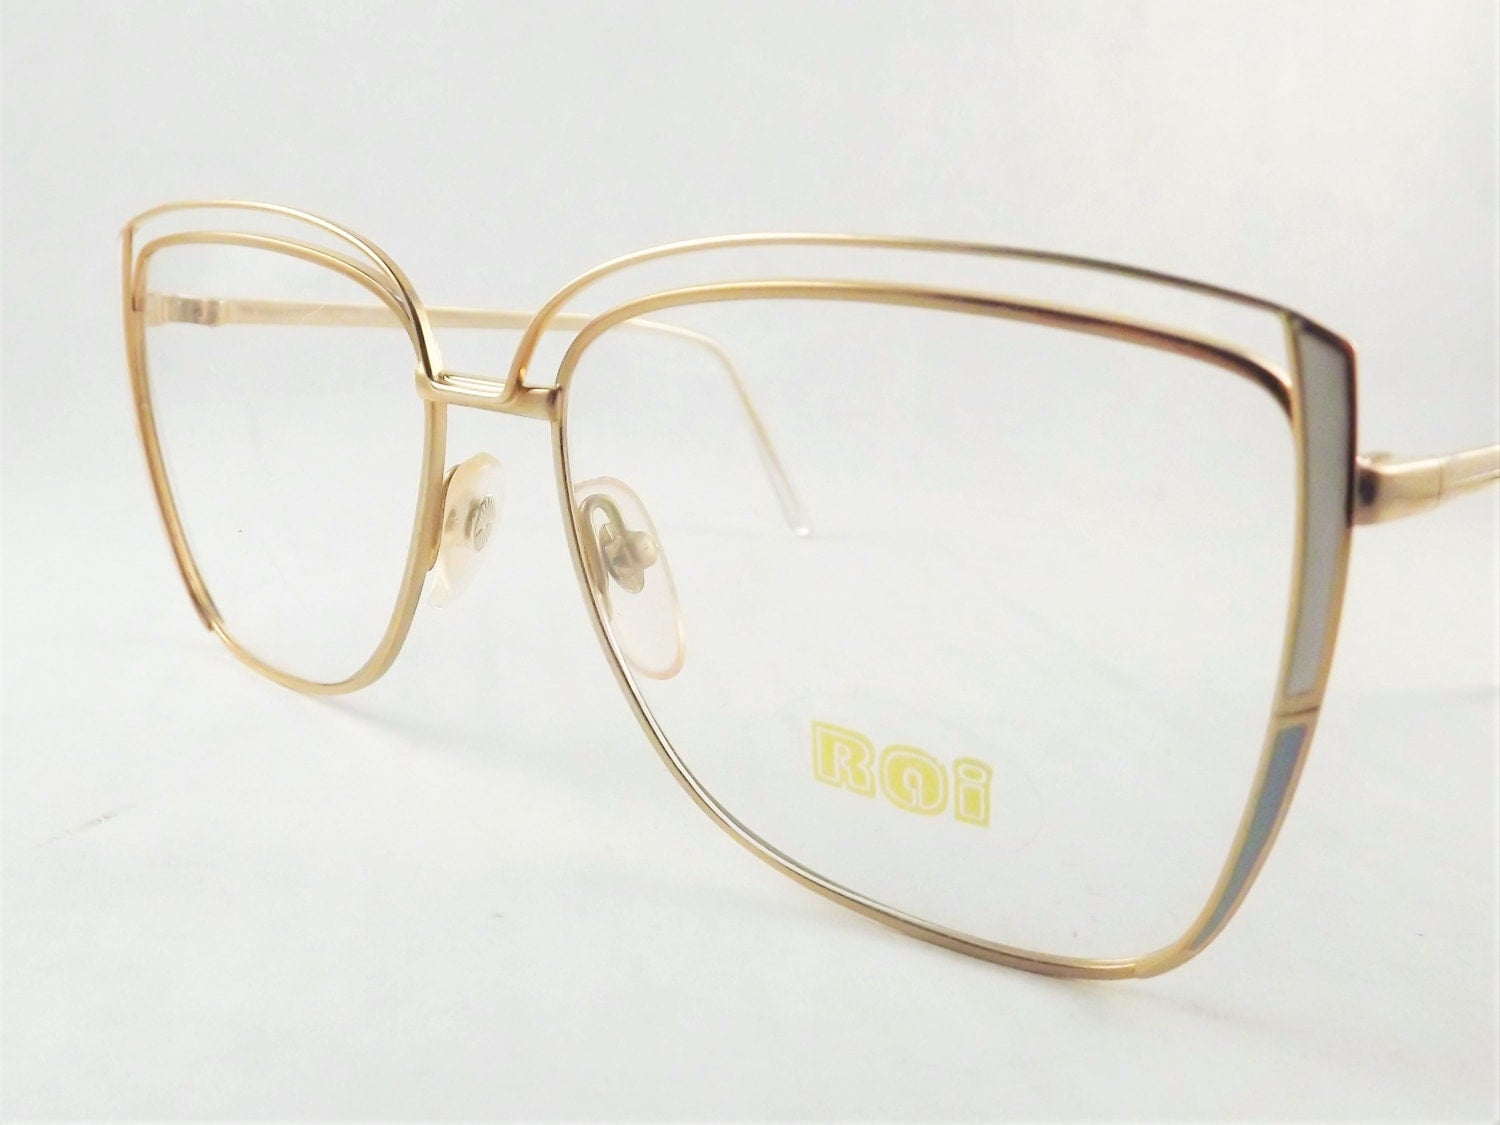 Gold Metal Eyeglass Frames : Womens Big Eyeglasses Gold Metal and White Blue Funky